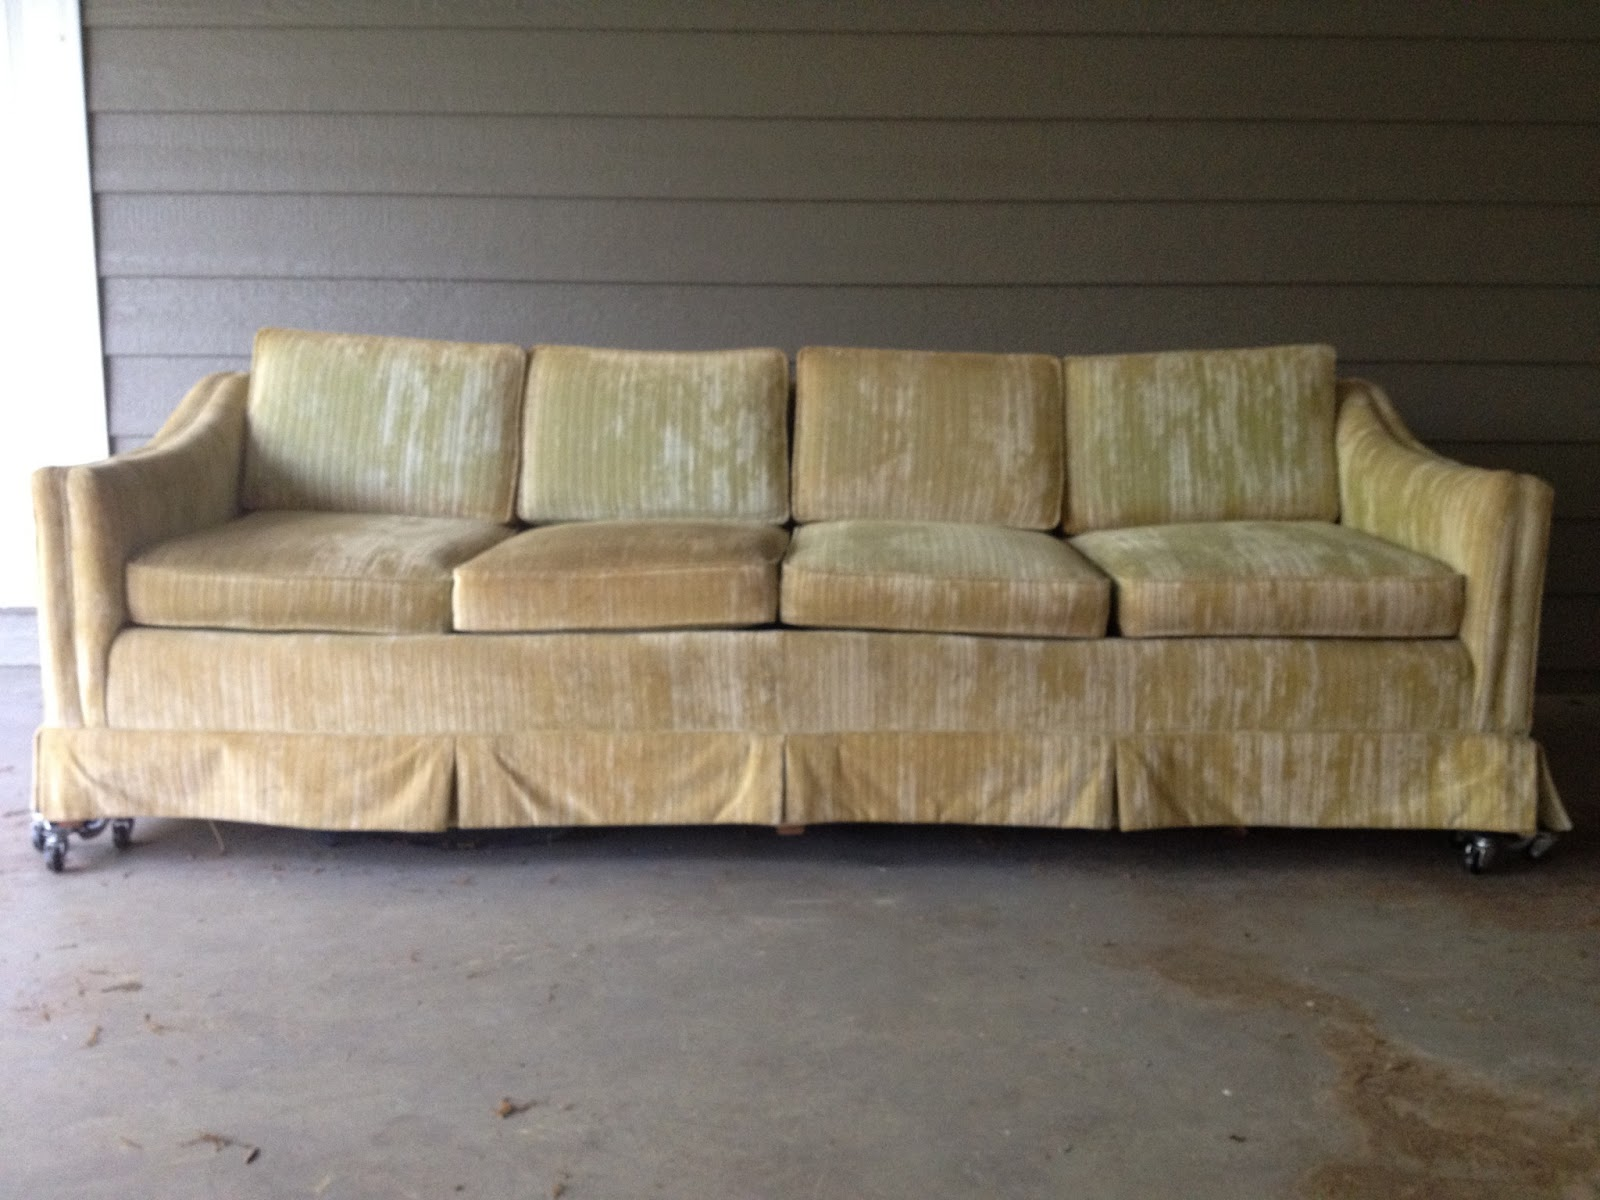 Between The Rafters 60s Mod Couch Reupholster Installment 1